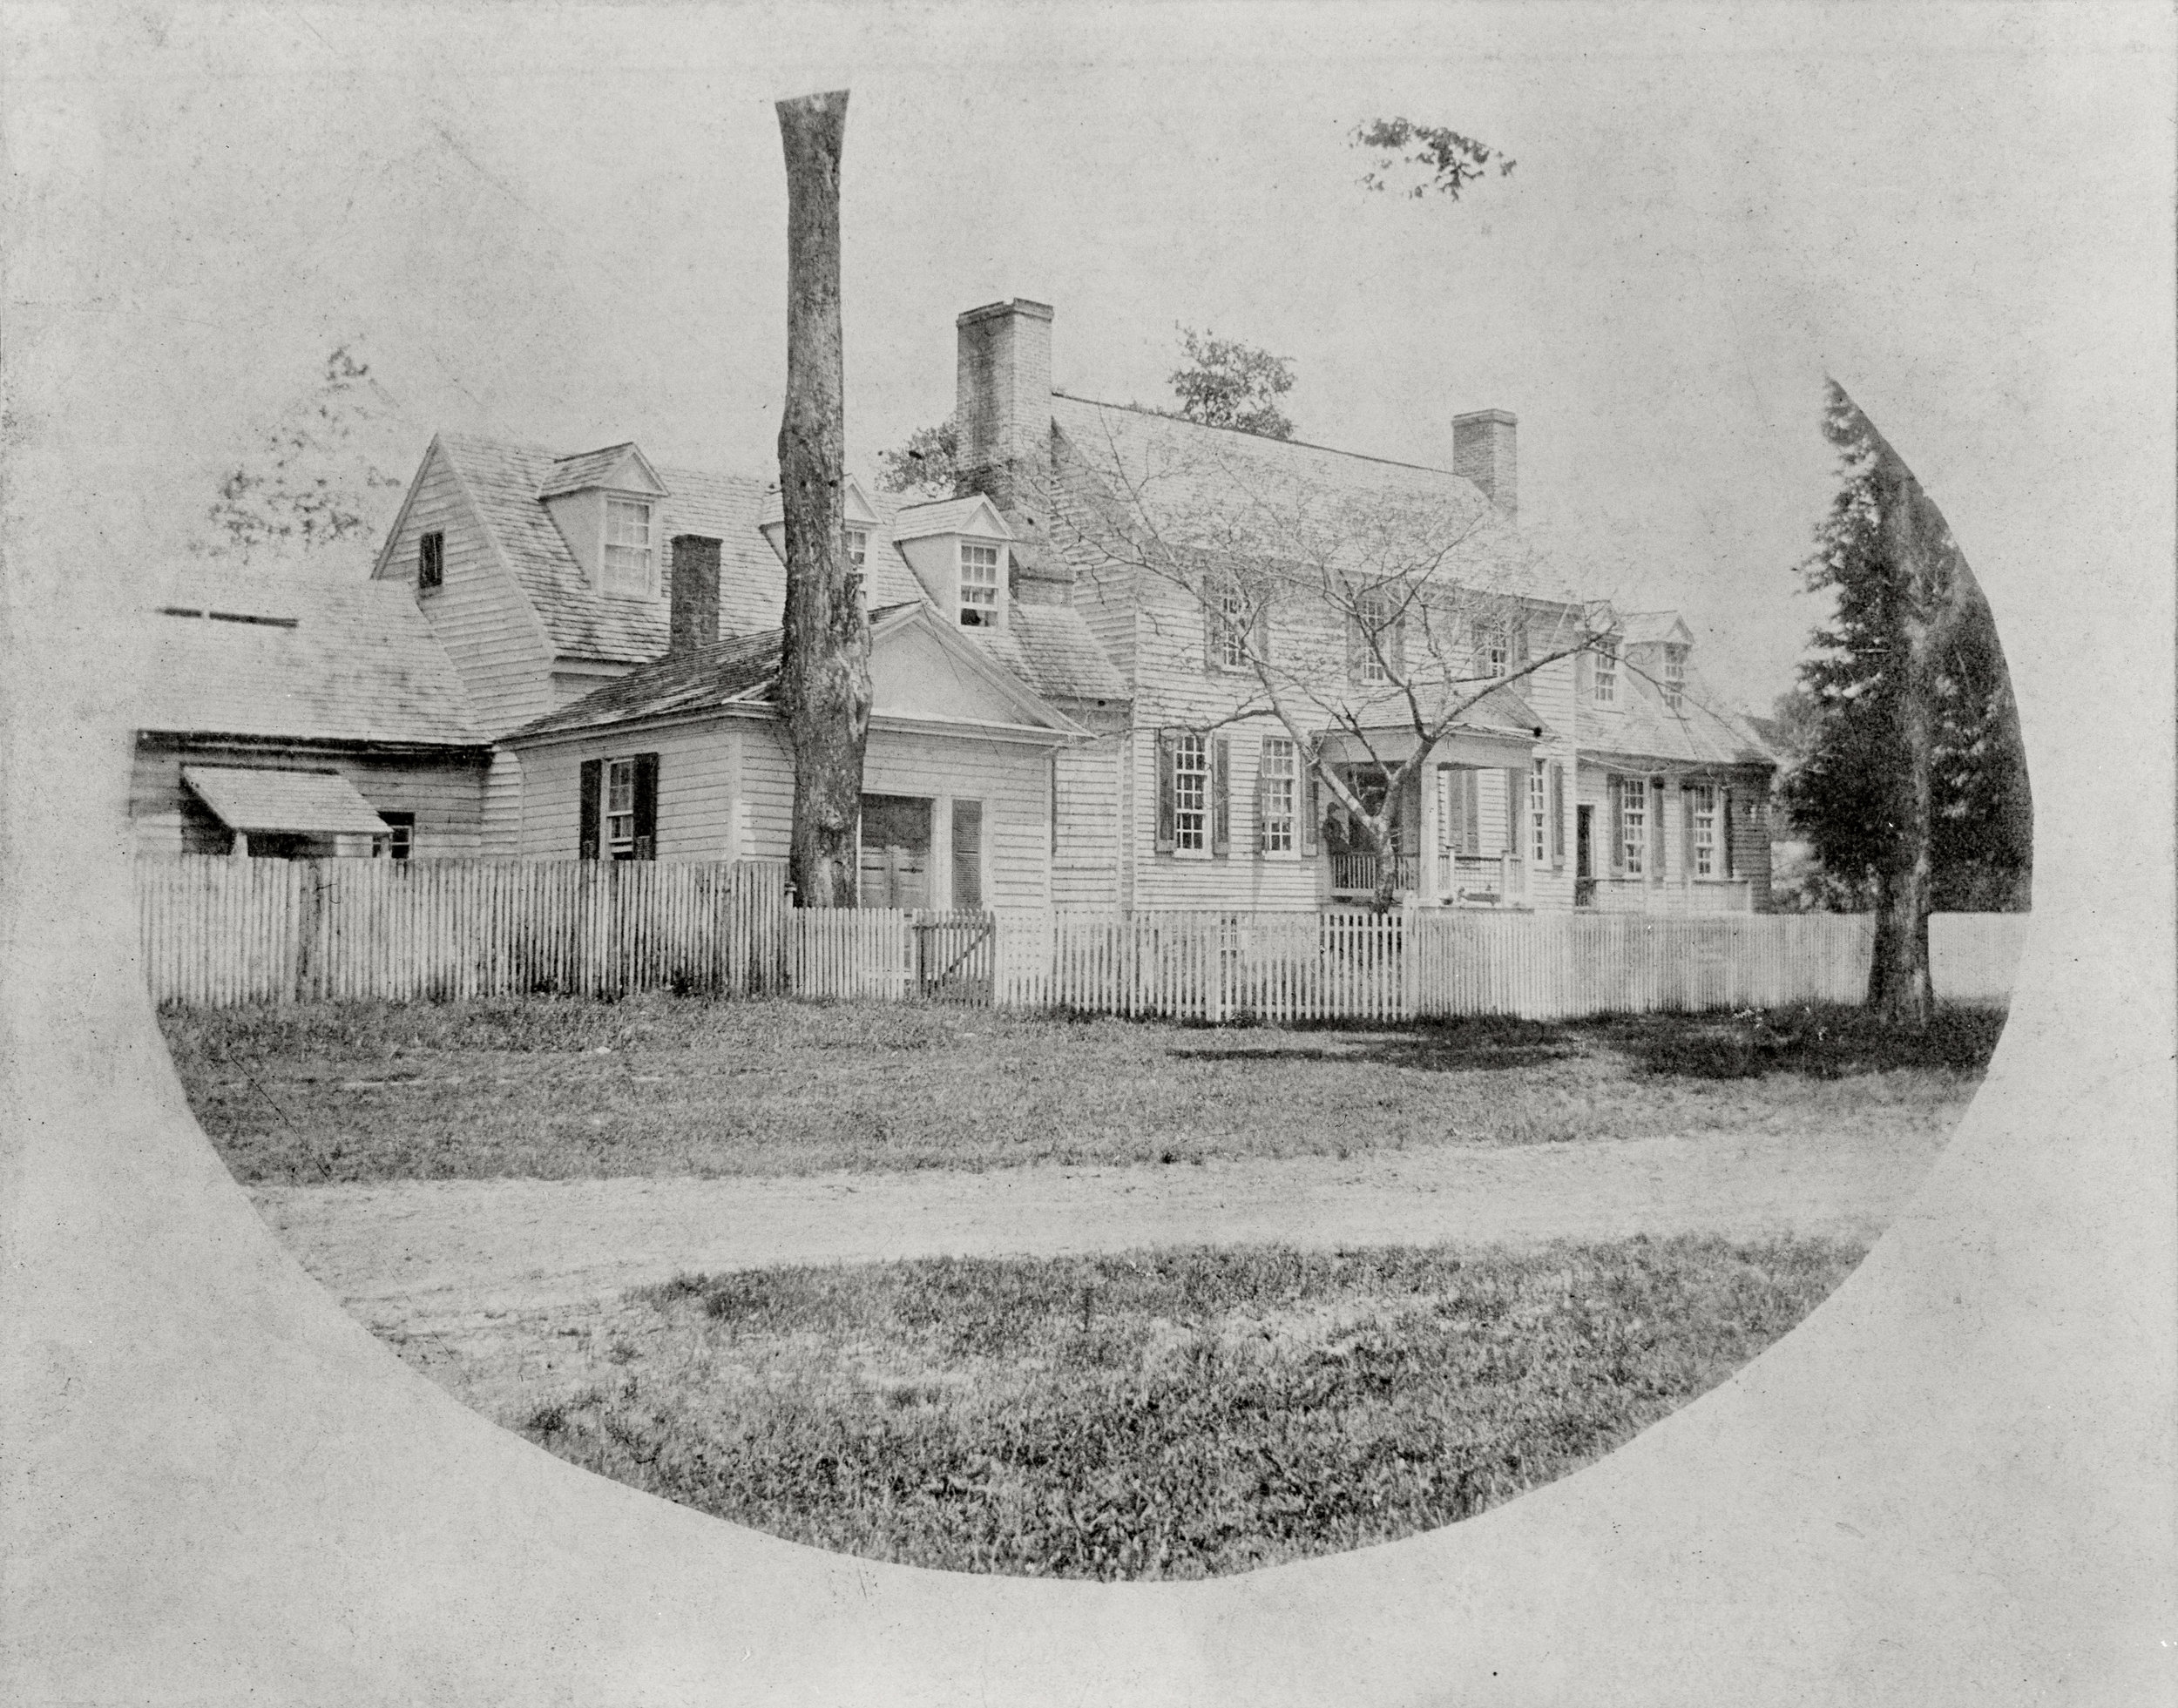 St. George-Tucker House, ca. 1904 (home of Mrs. Cynthia Bevery Tucker Coleman)